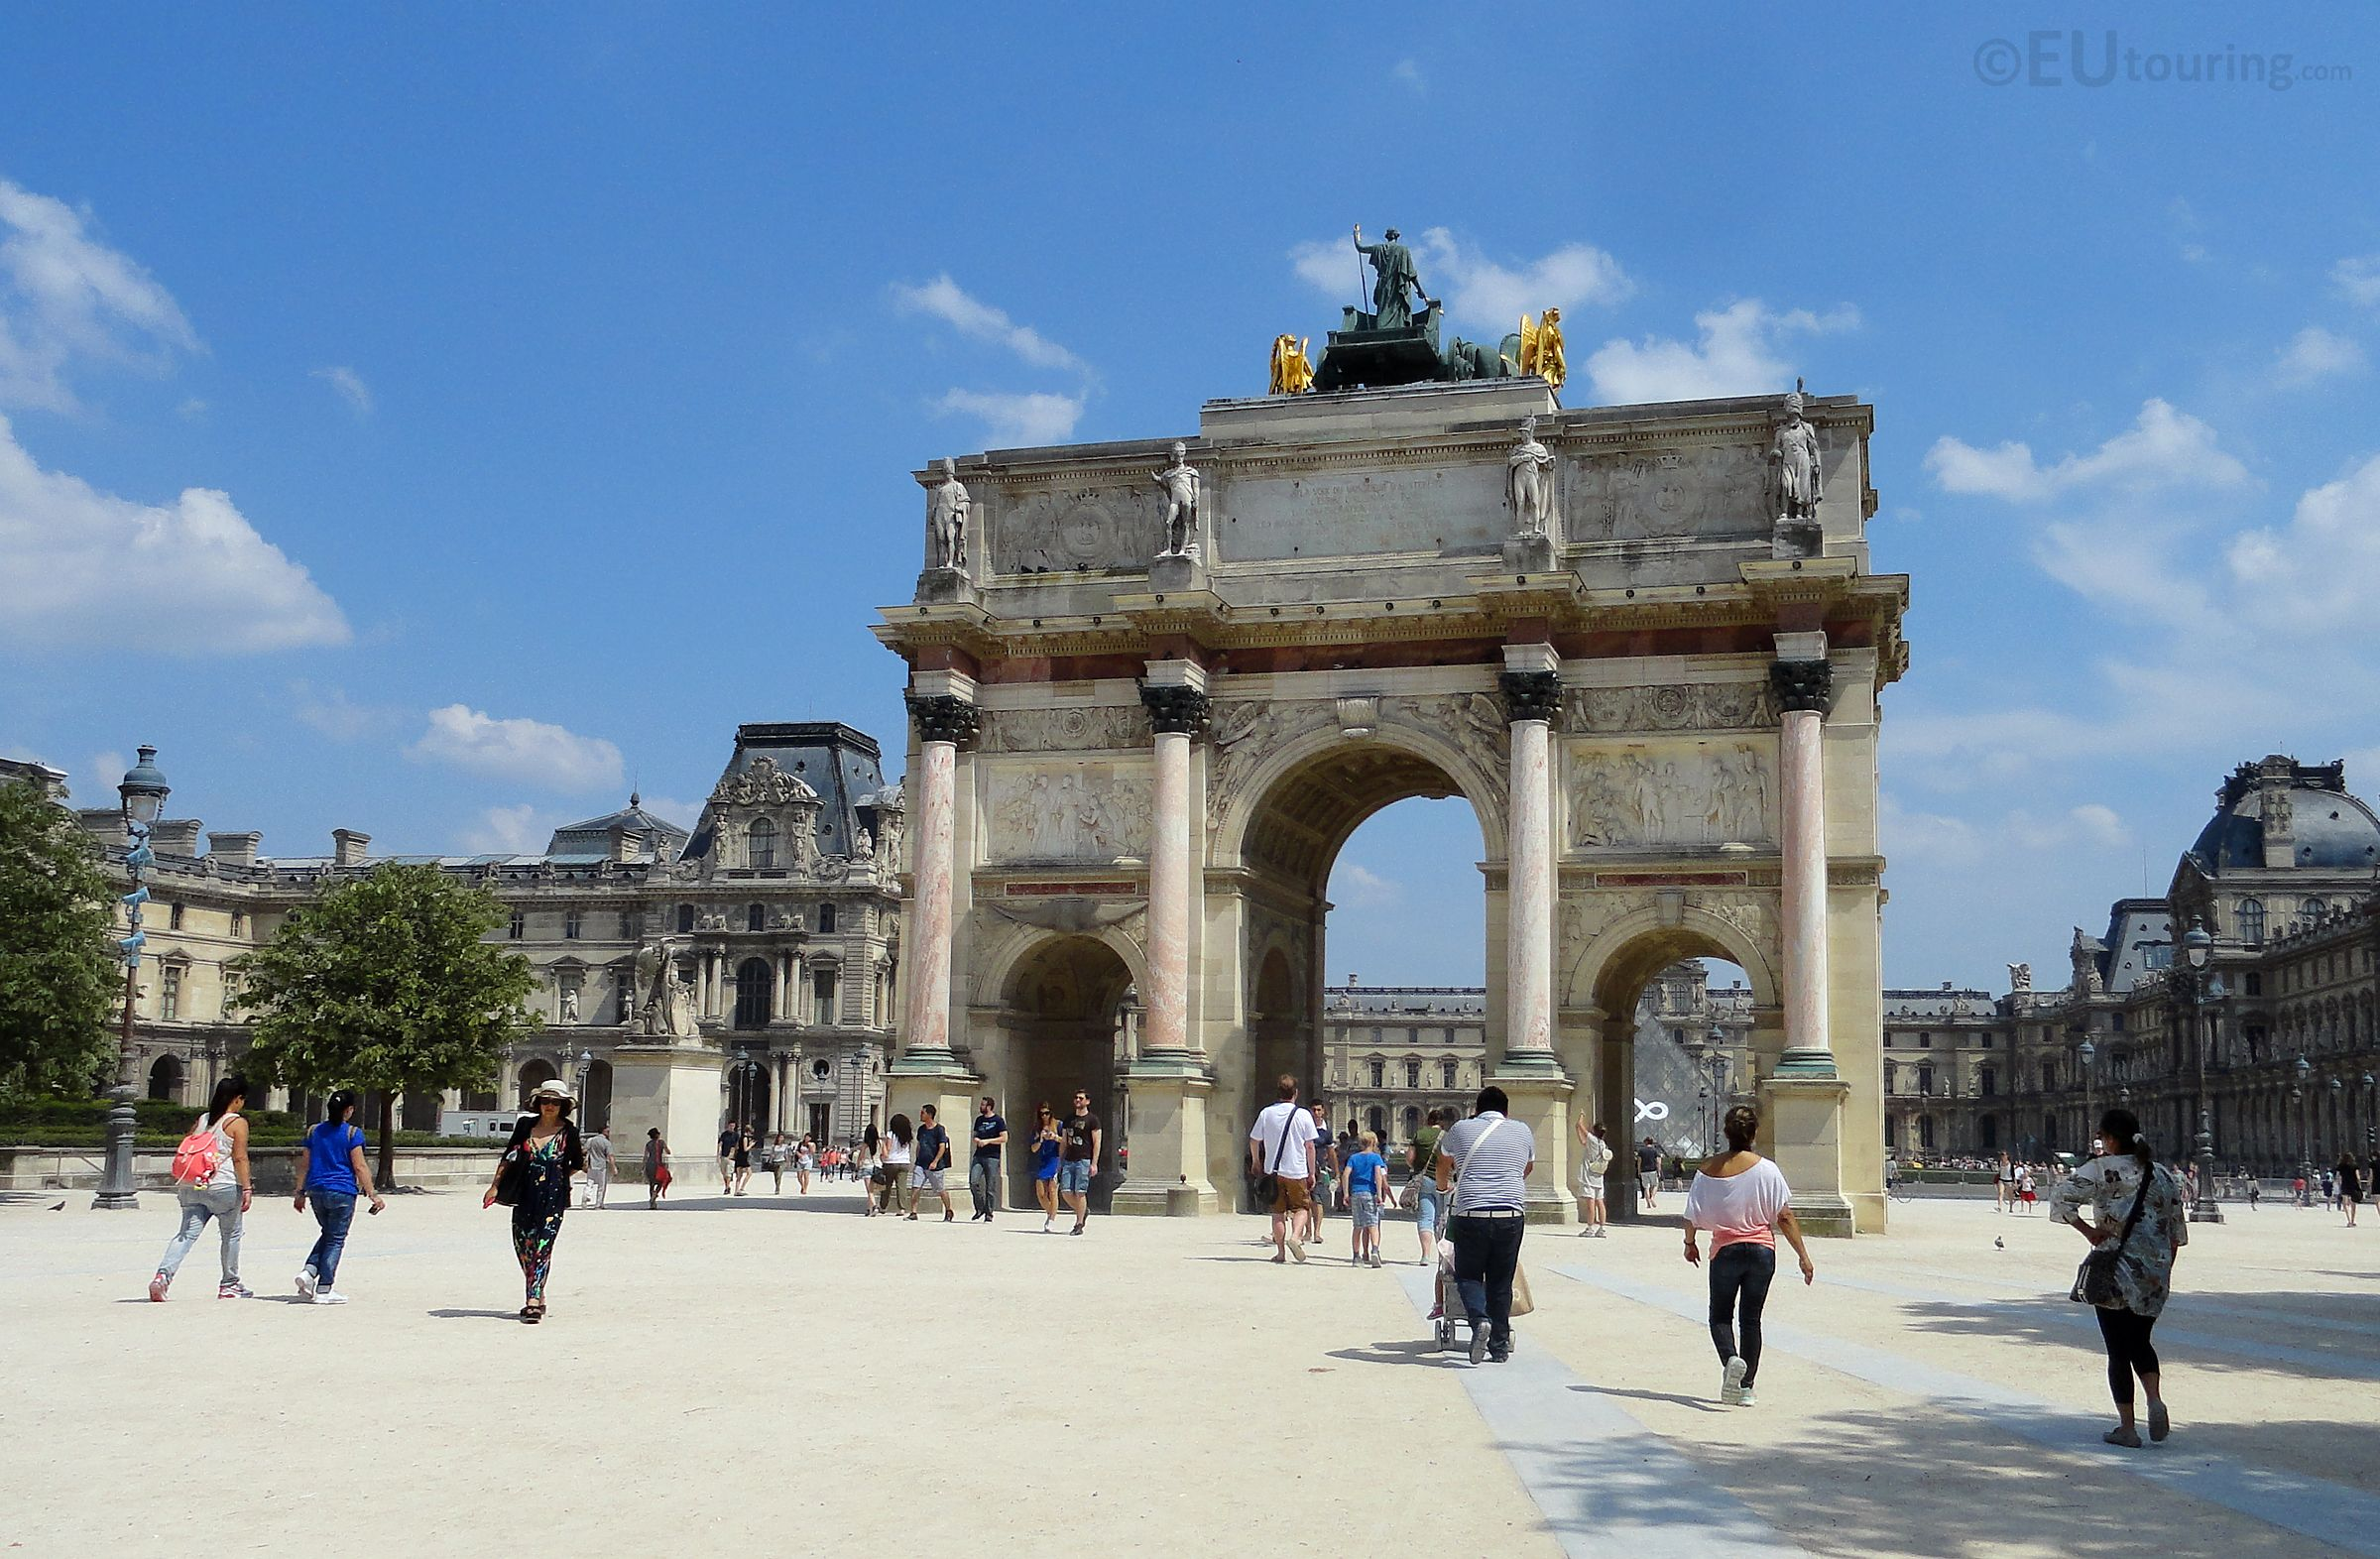 Here You Can See The Arc De Triomphe Du Carrousel Which Acts As An